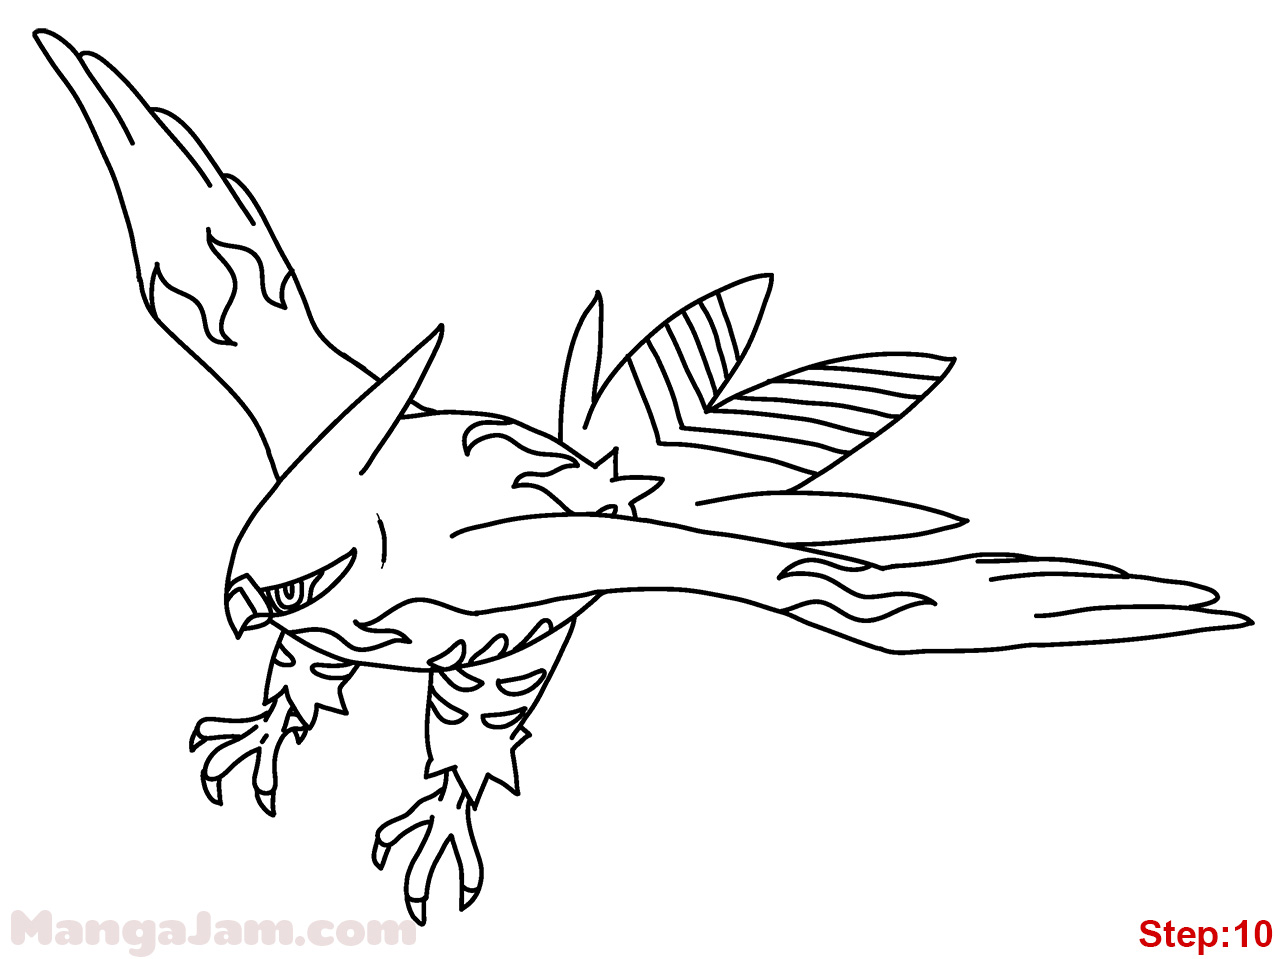 Pokemon coloring pages talonflame - Step